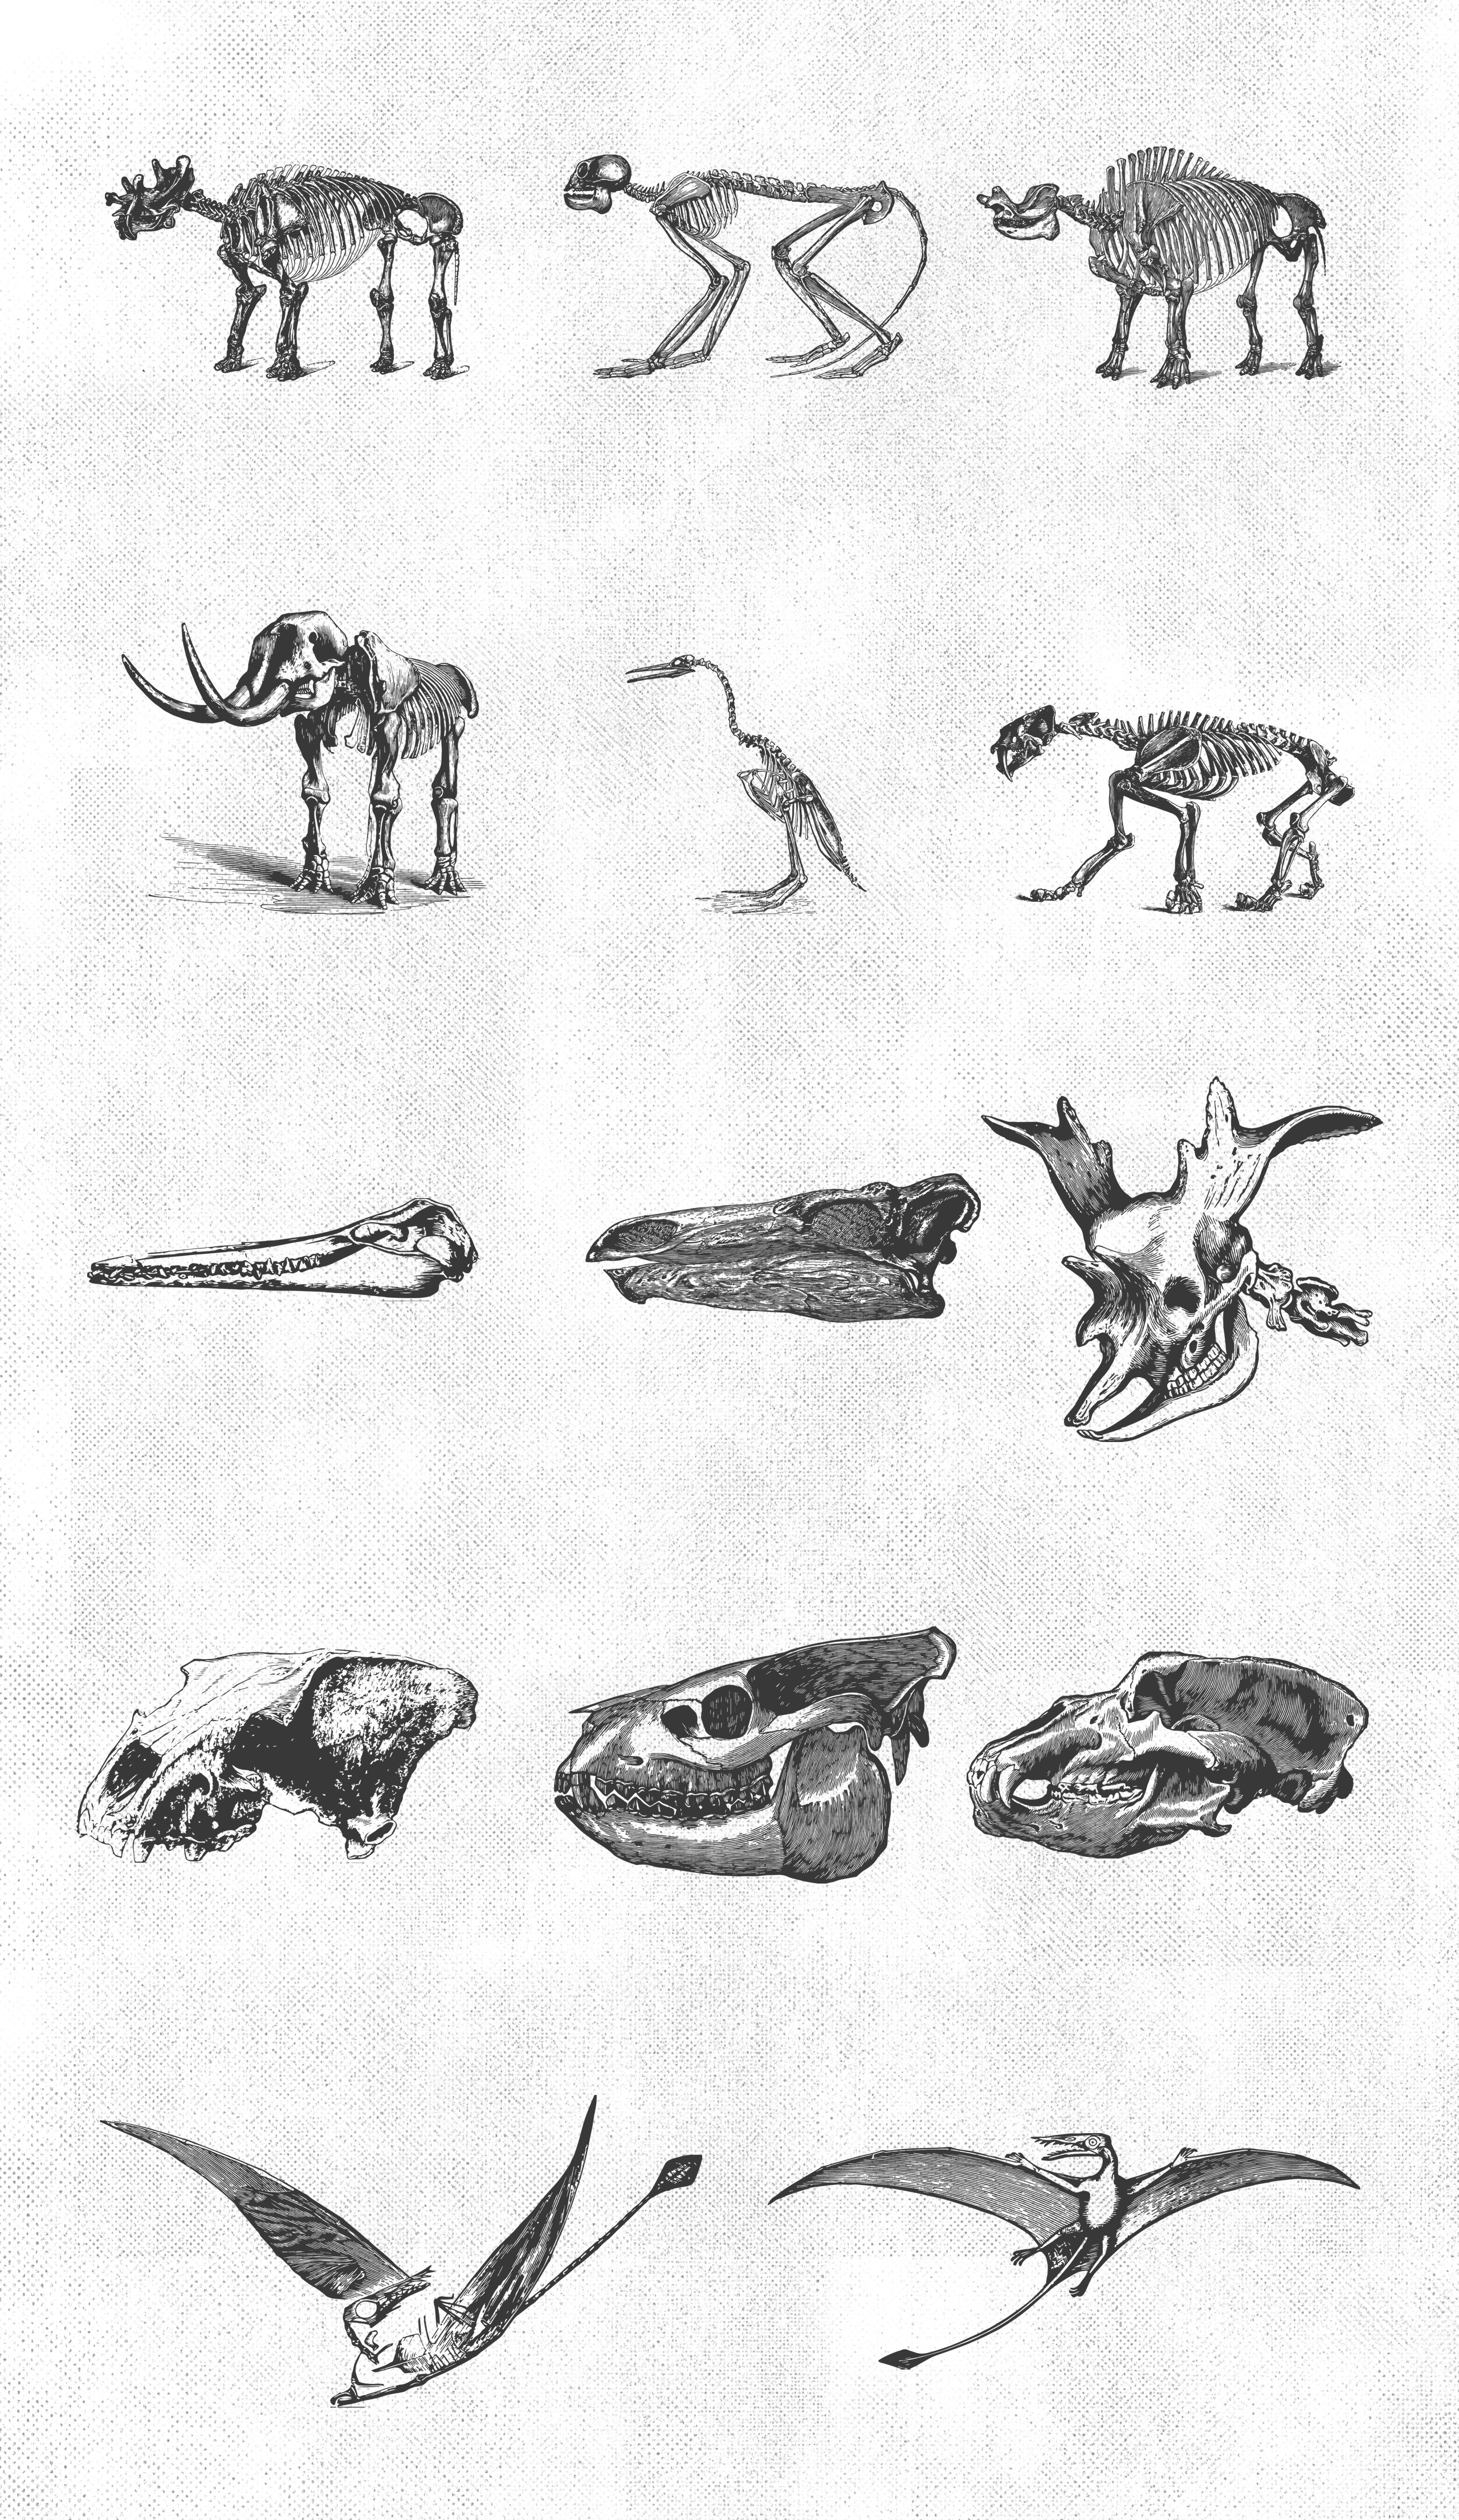 Paleontology Vintage Vector Illustrations 150 Items example image 2